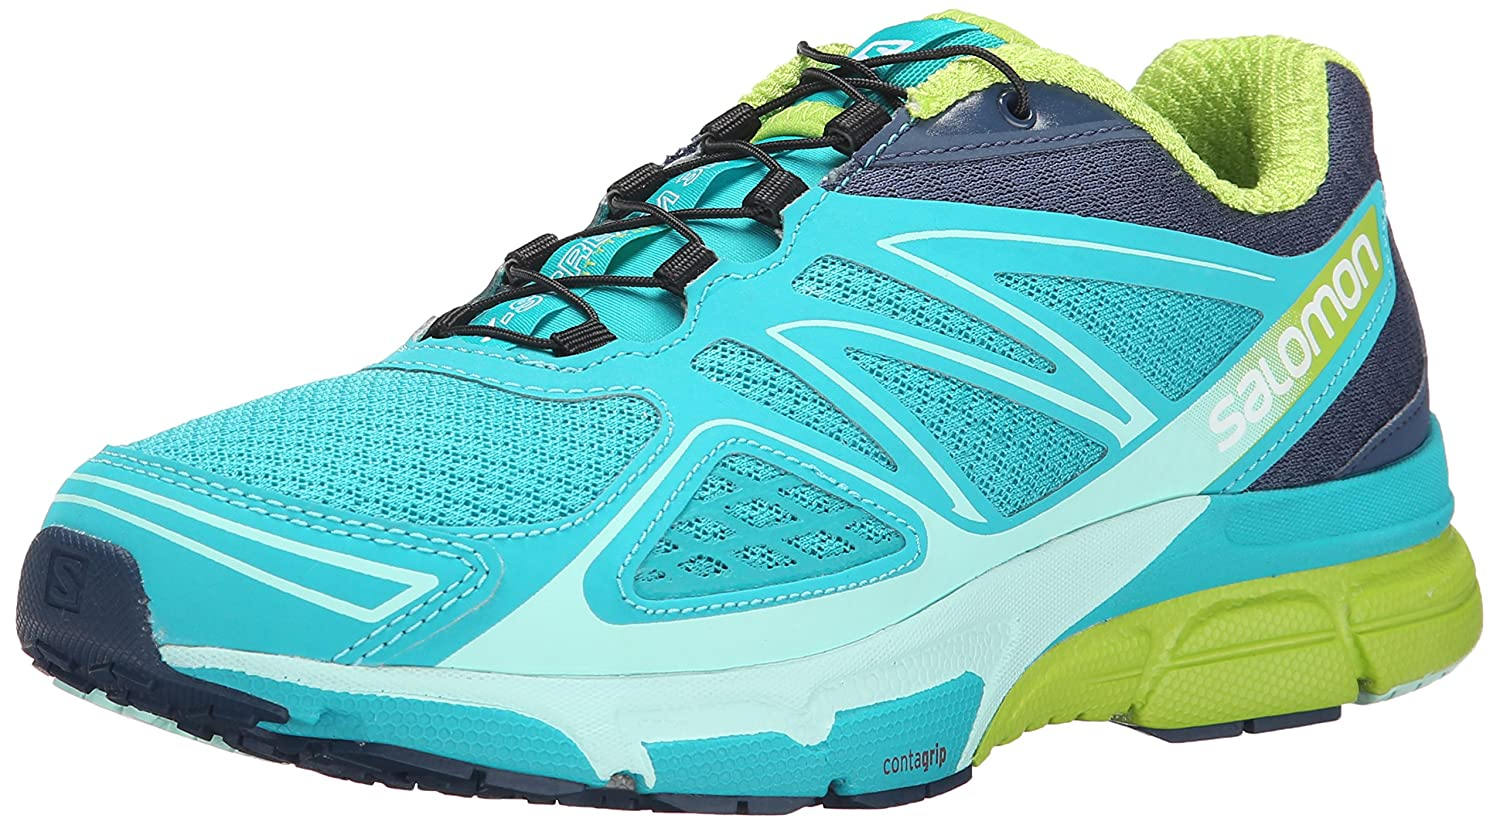 Salomon Women's X-Scream 3D W Trail Running Shoe B00PRQH70S 12 B(M) US|Teal Blue F/Slateblue/Granny Green